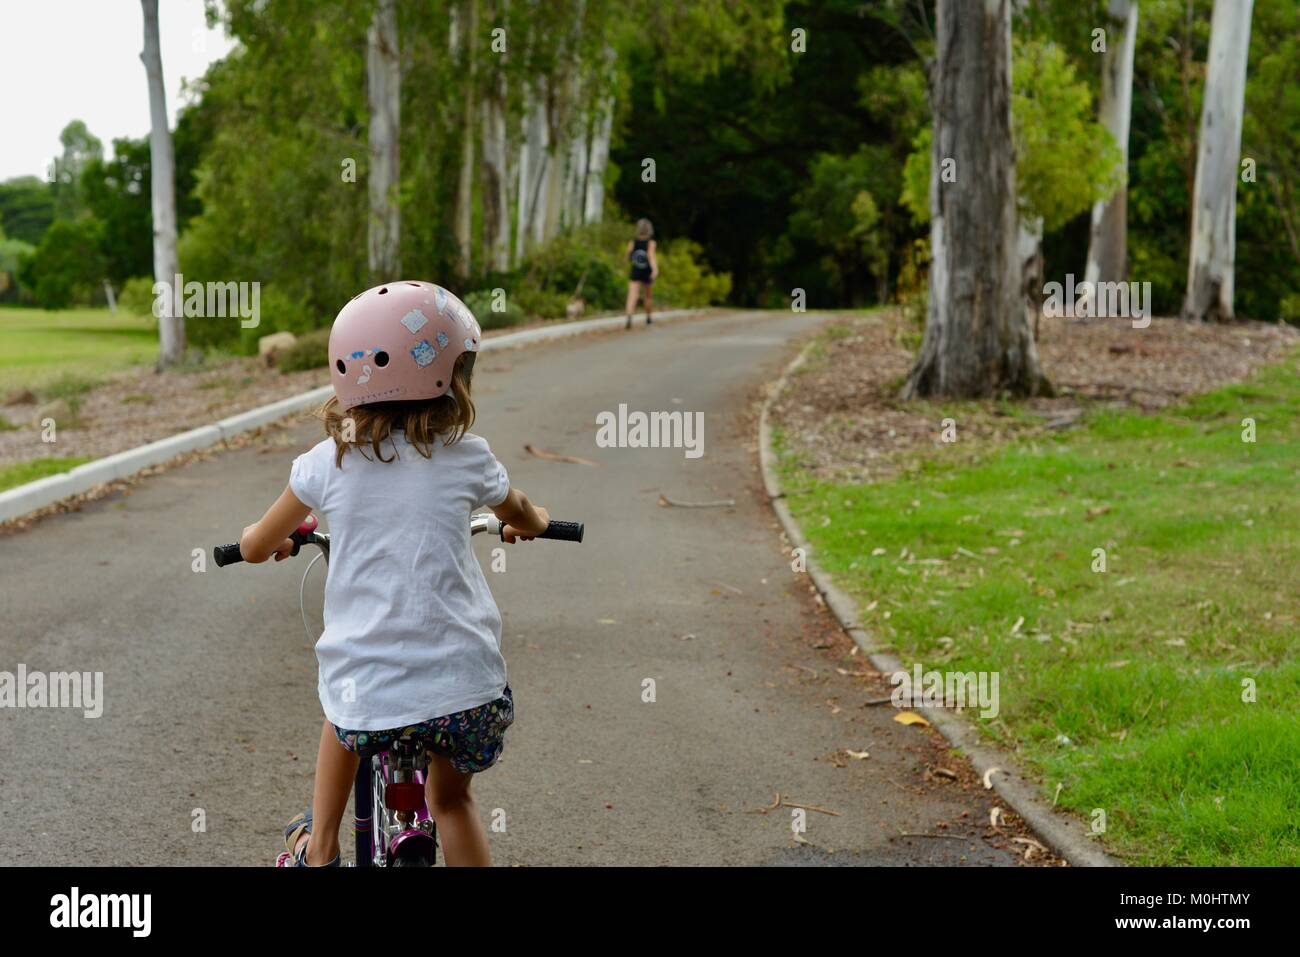 Young girl rides a bike on the road through Anderson Park Botanic Gardens, Townsville, Queensland, Australia Stock Photo